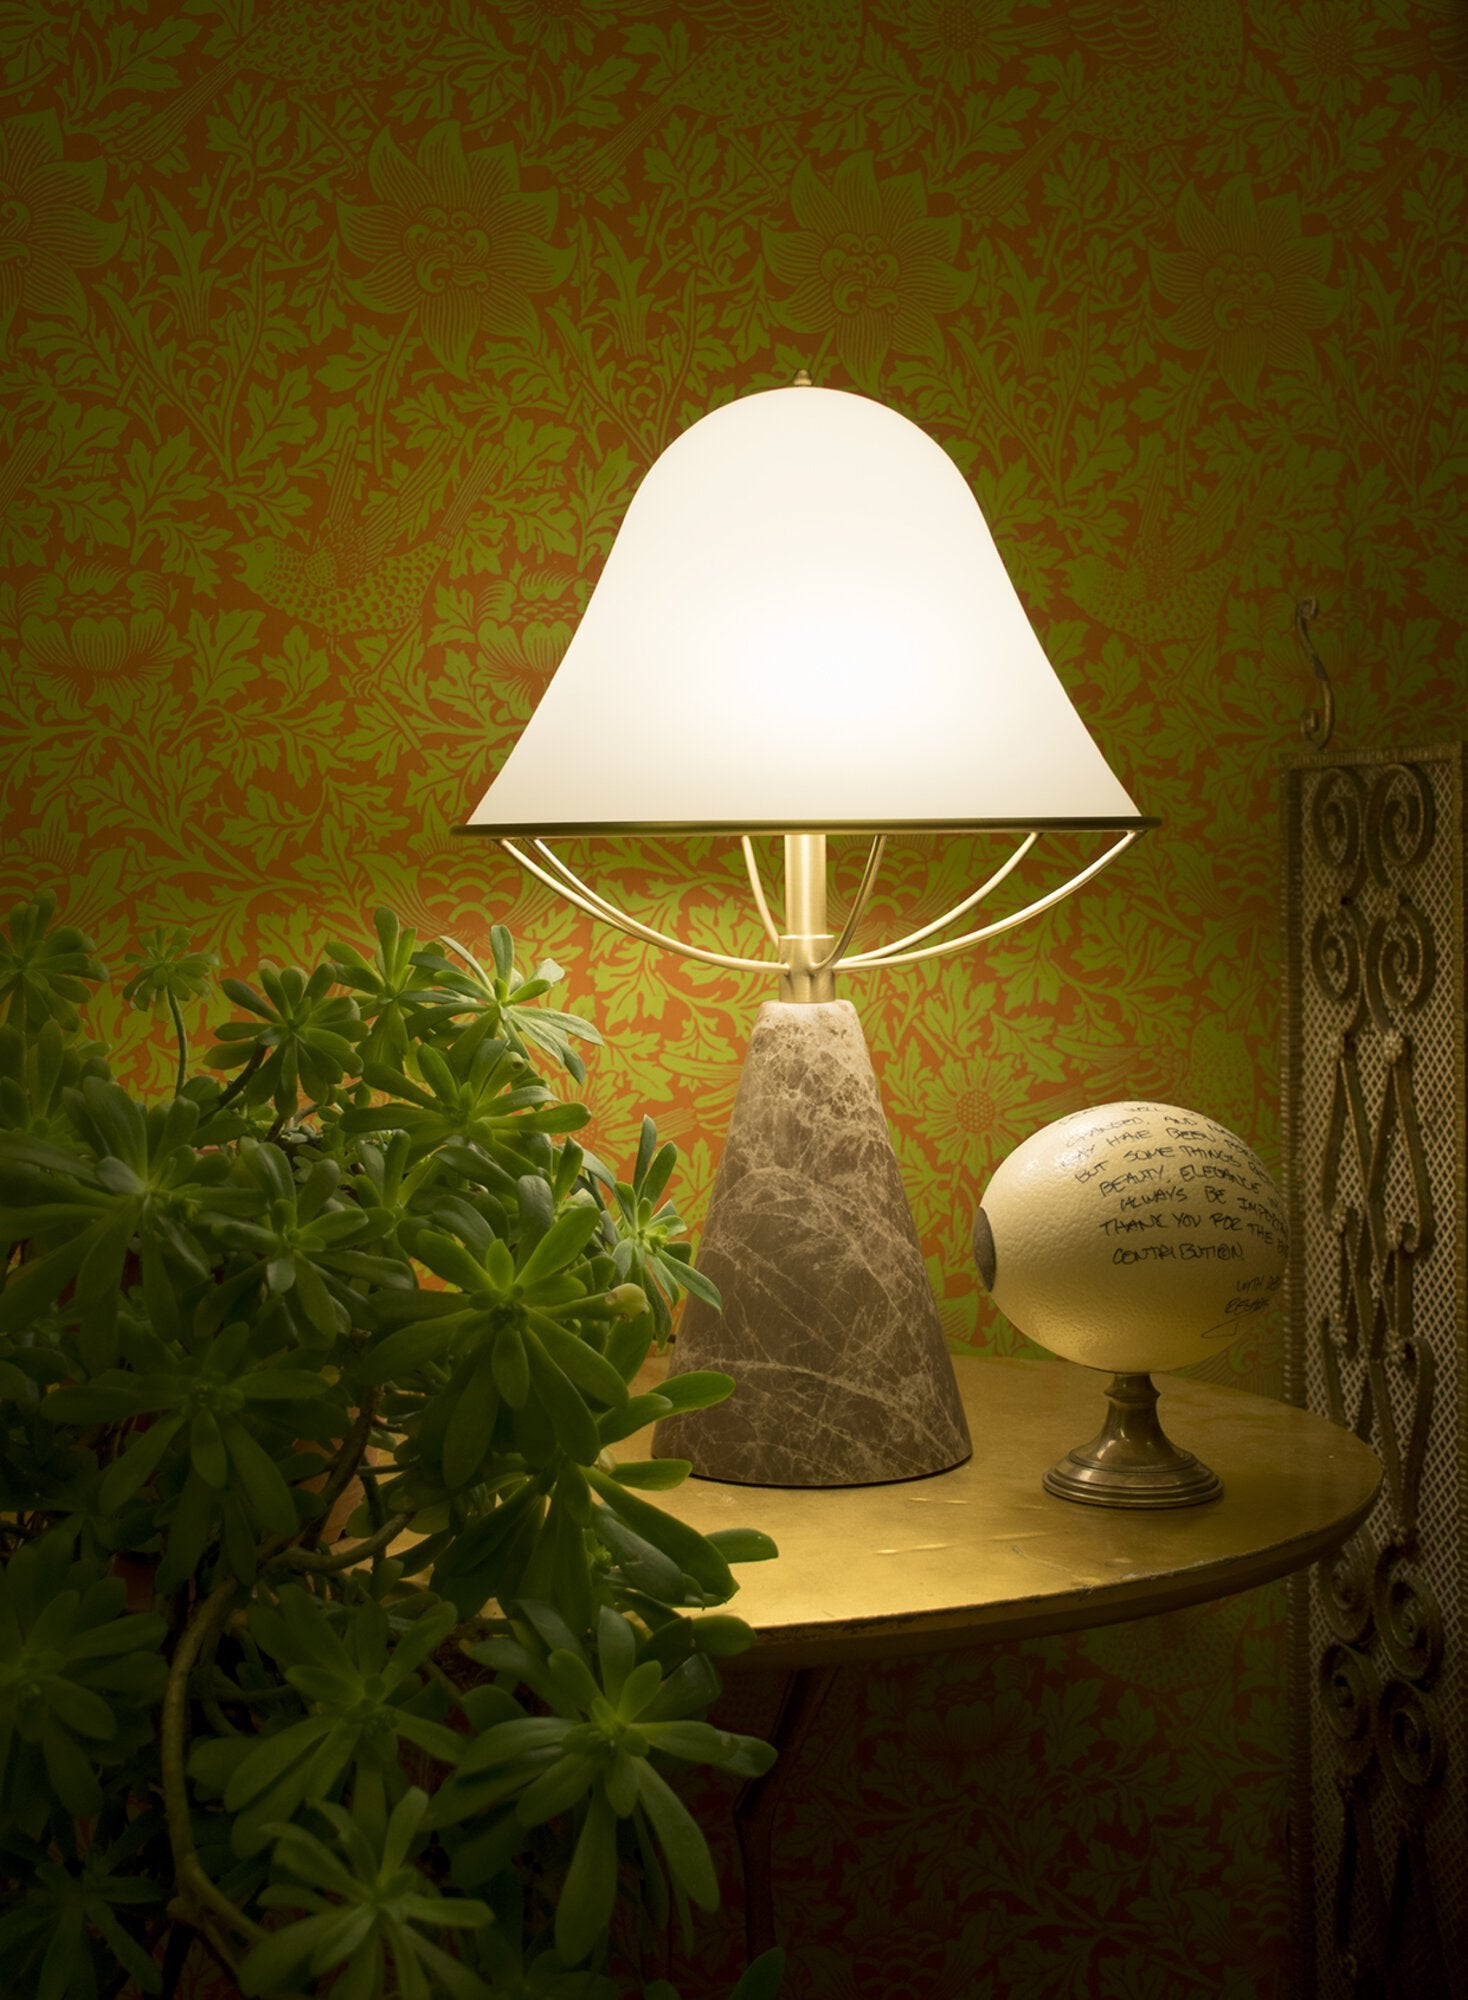 Replacement glass shade for Anita lamp